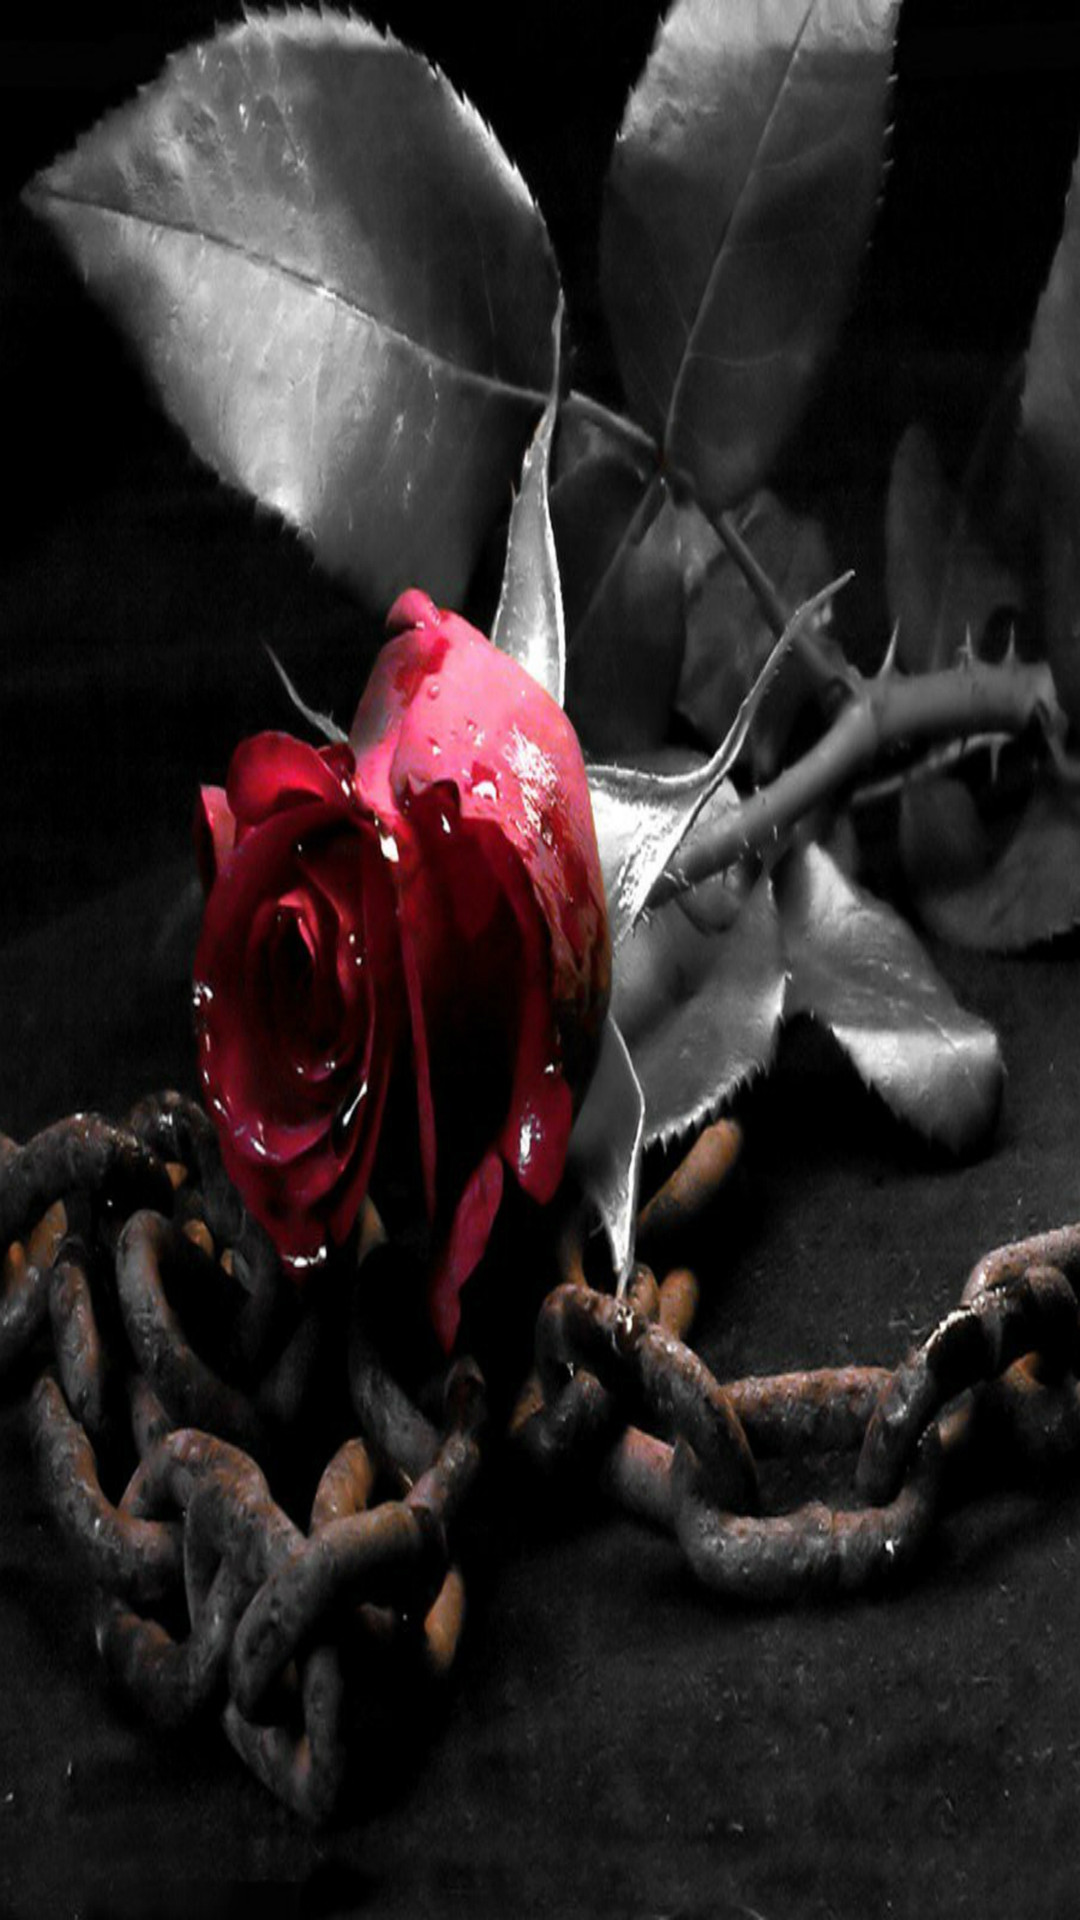 Black And White Rose Iphone Wallpaper   Src Black Roses - Dark Red Rose Wallpaper Iphone - HD Wallpaper